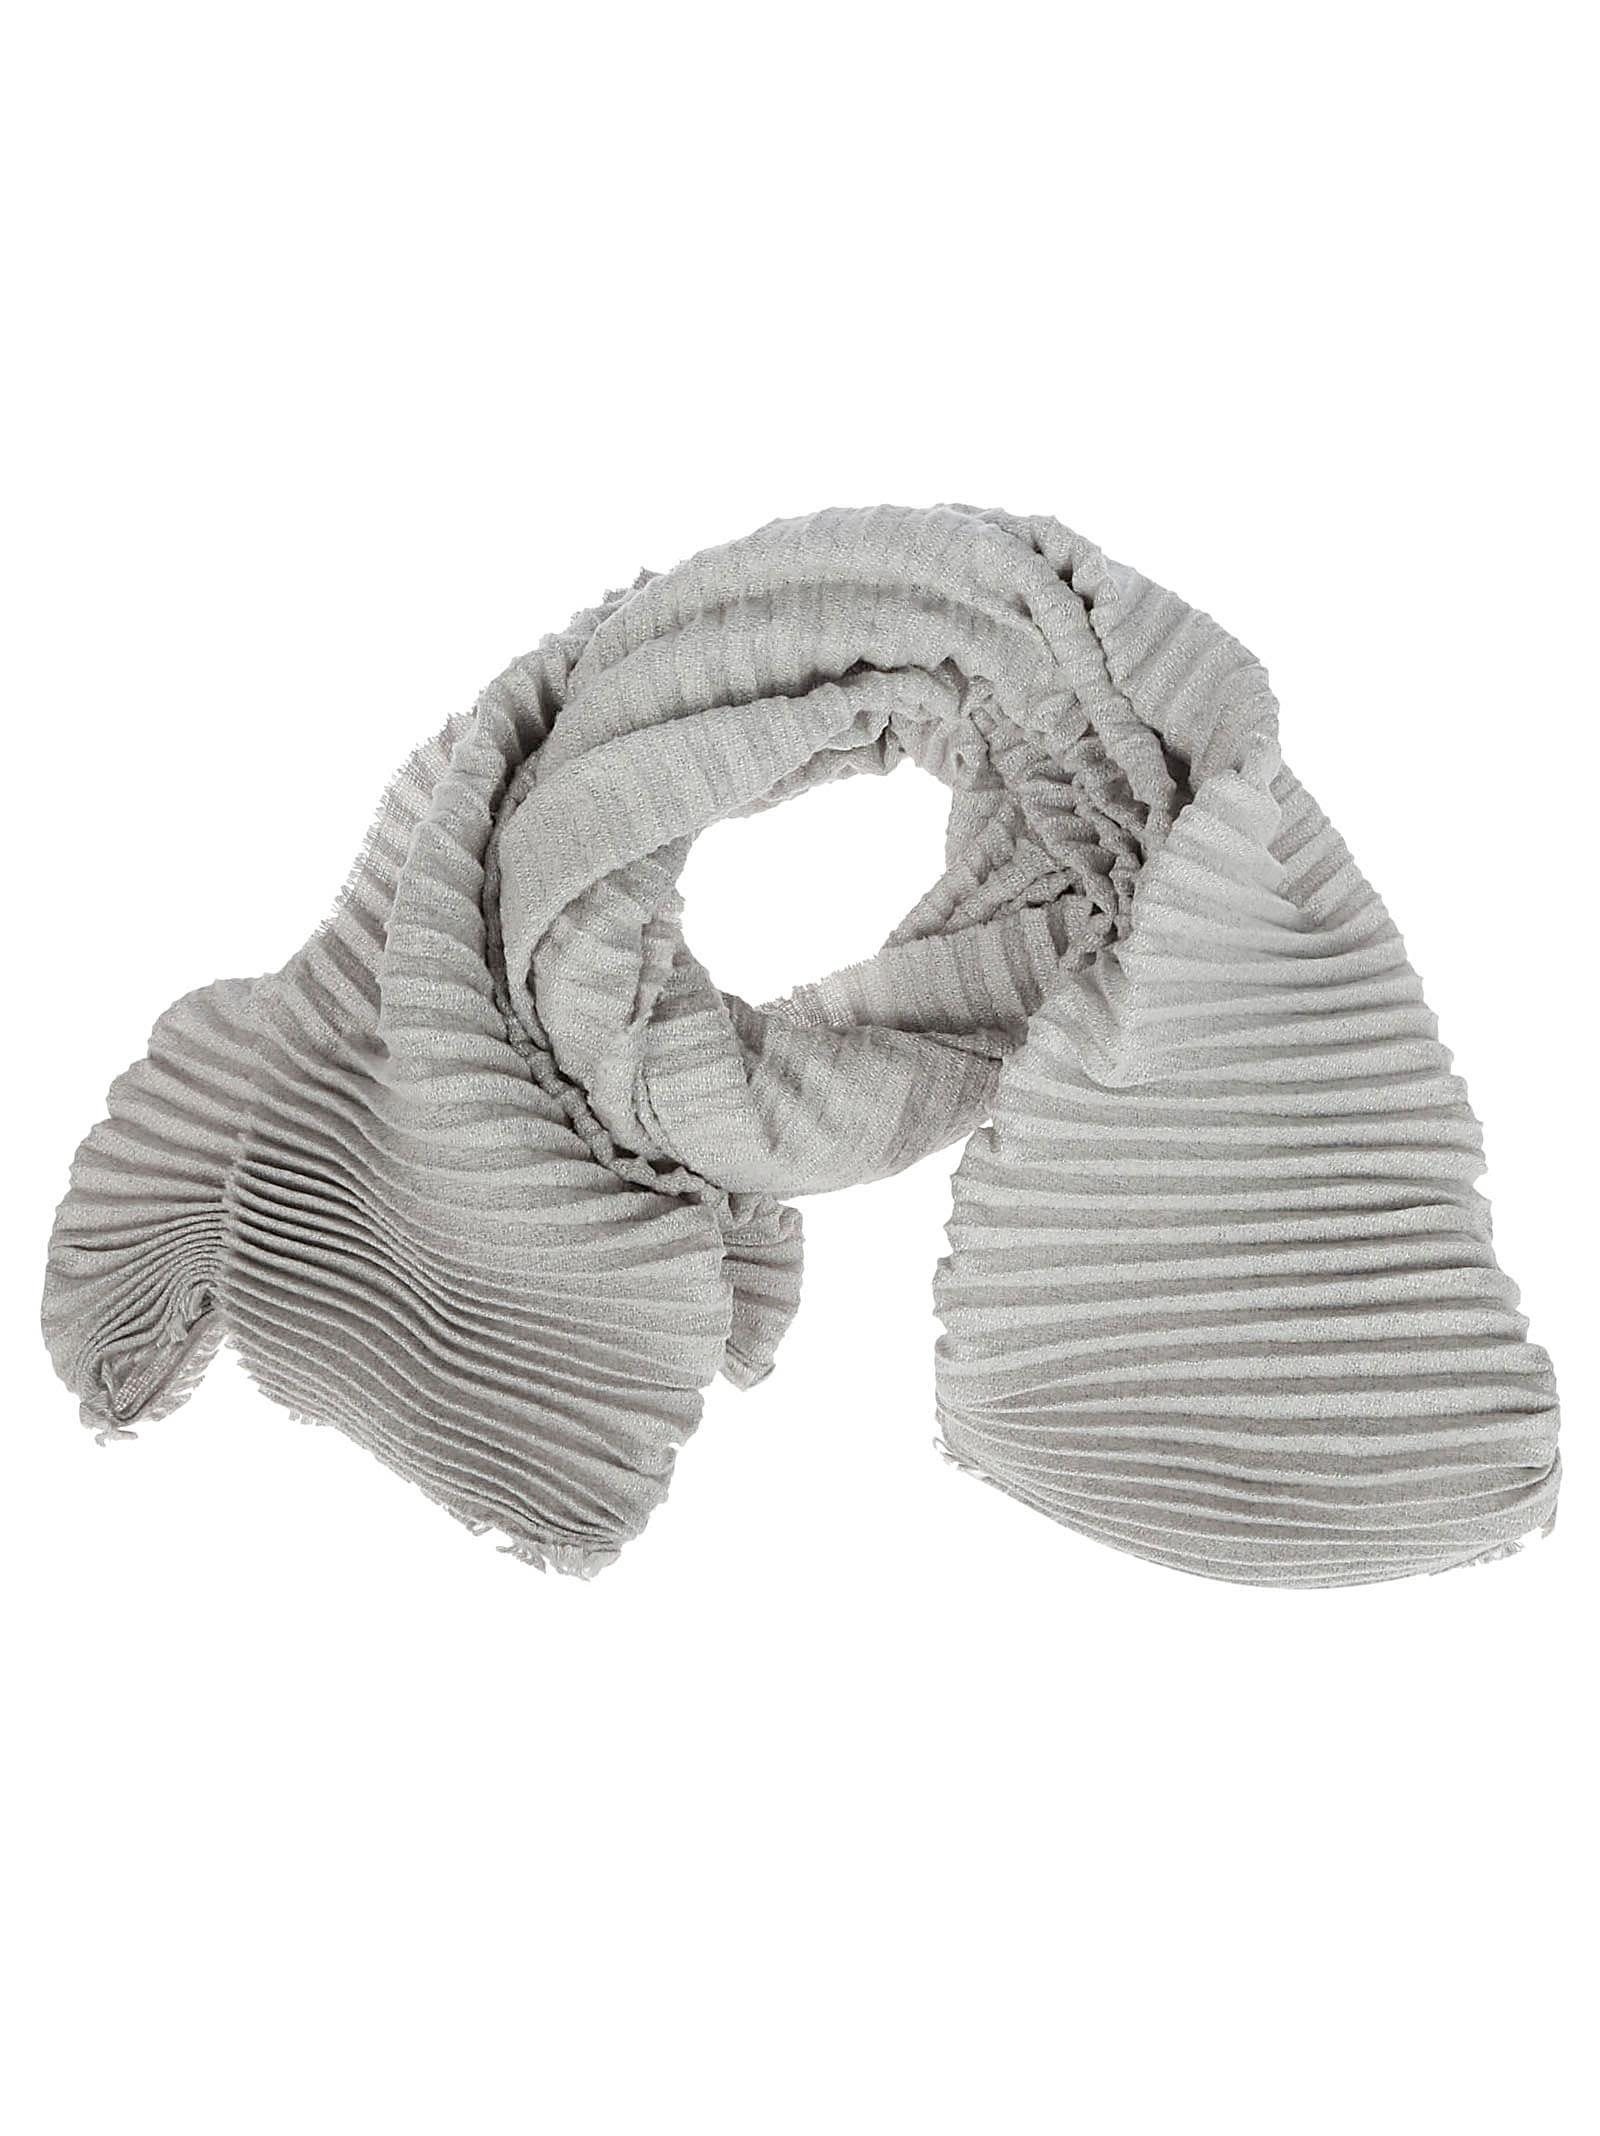 DESTIN SURL Destin Ribbed Detail Scarf in Grey